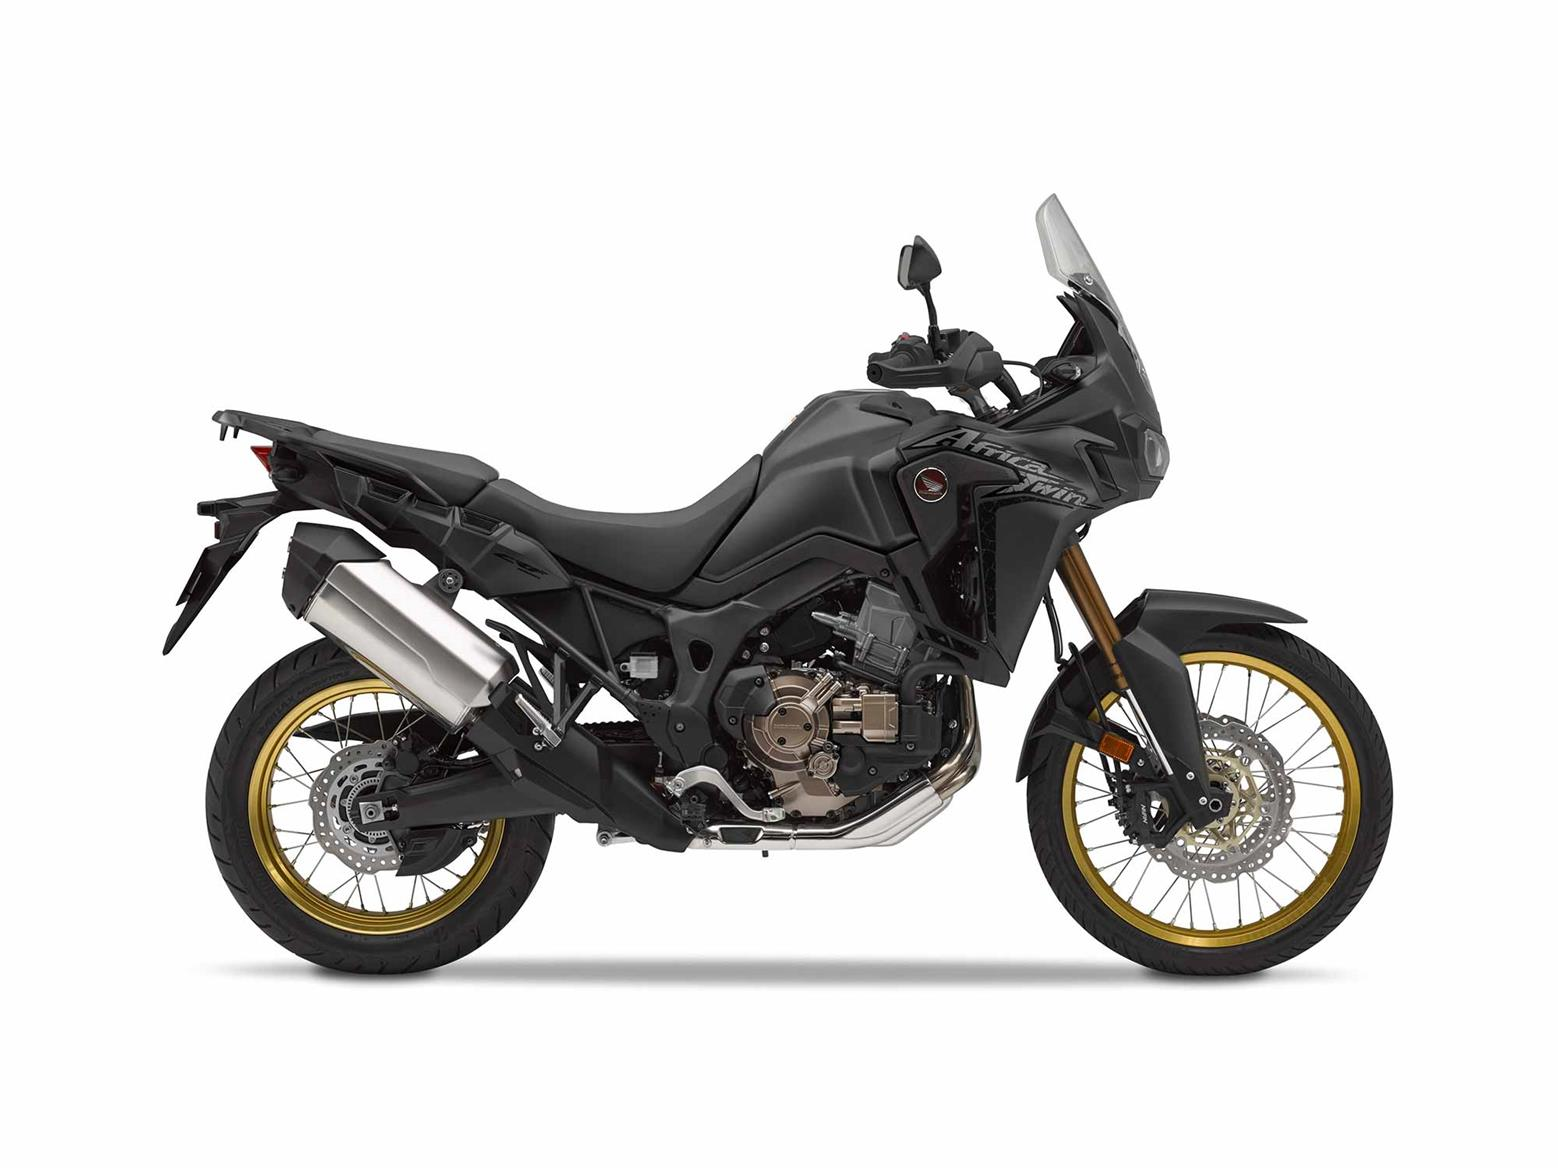 The Honda Africa Twin